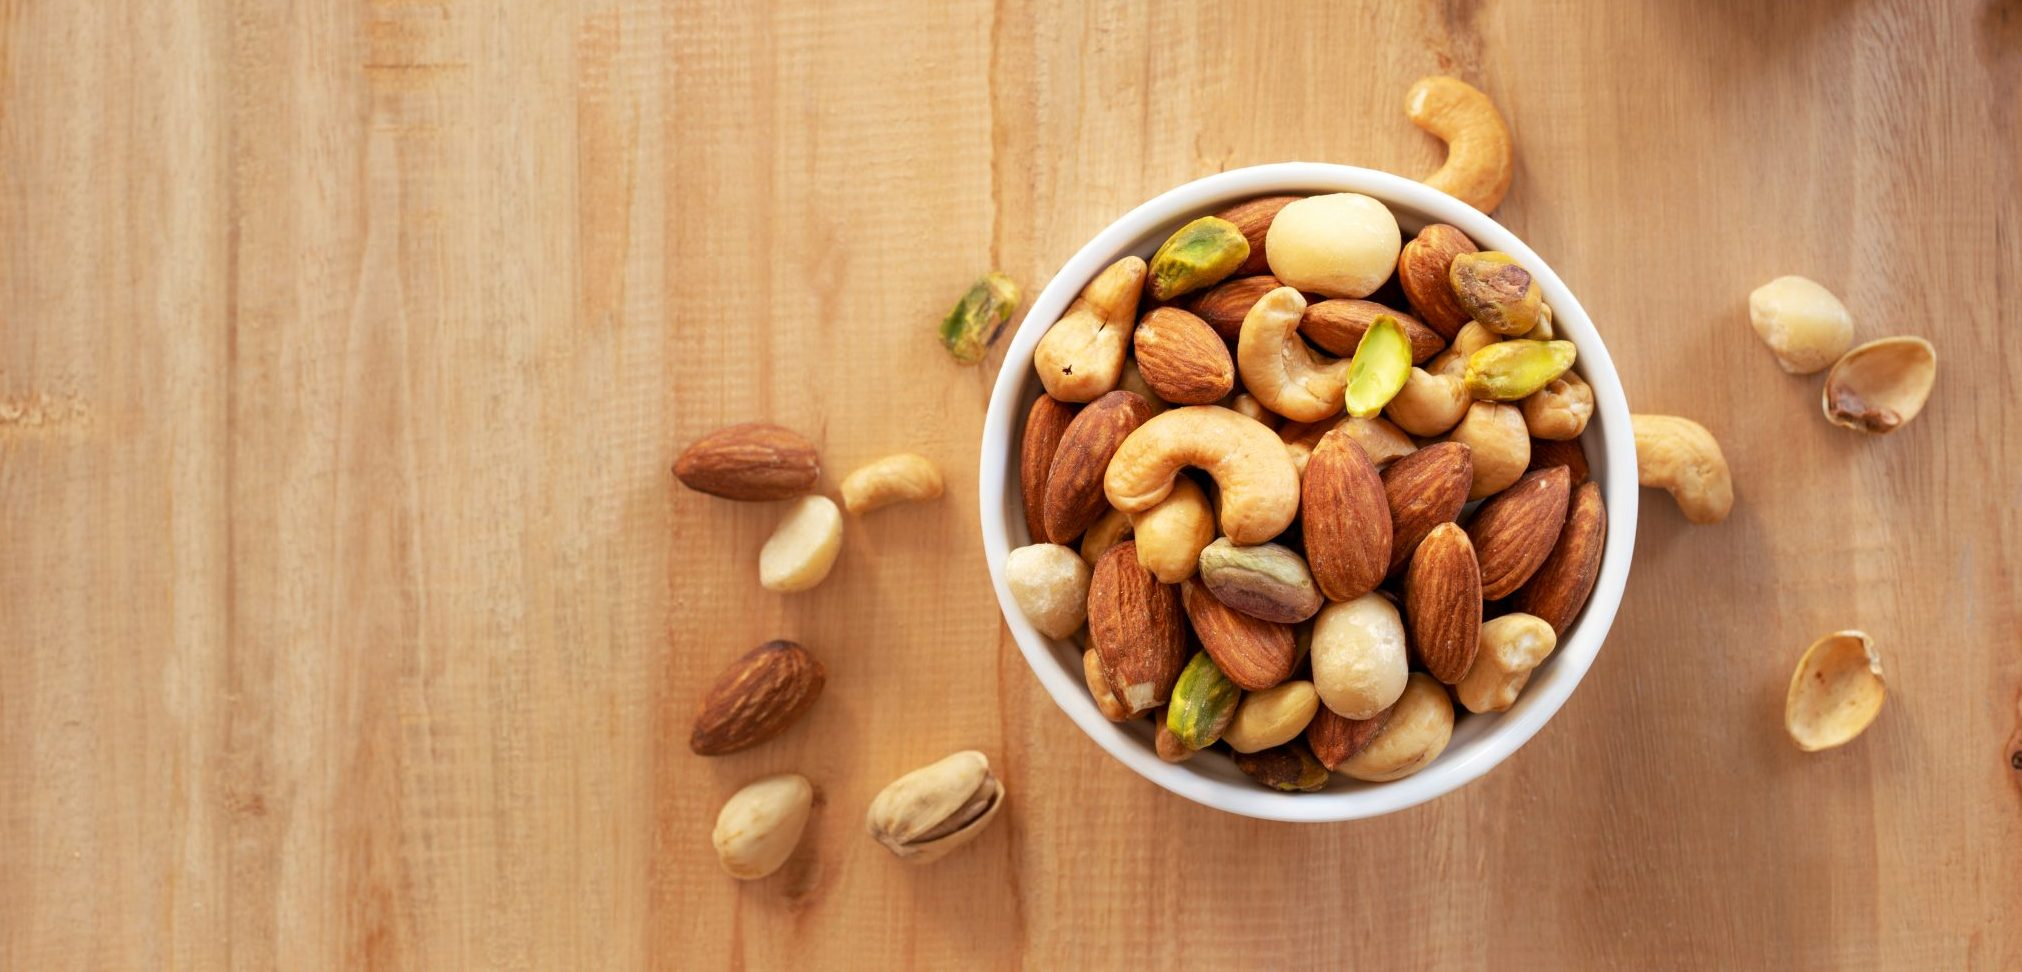 Go Nuts for Powerful Health Benefits of These 10 Top Nuts